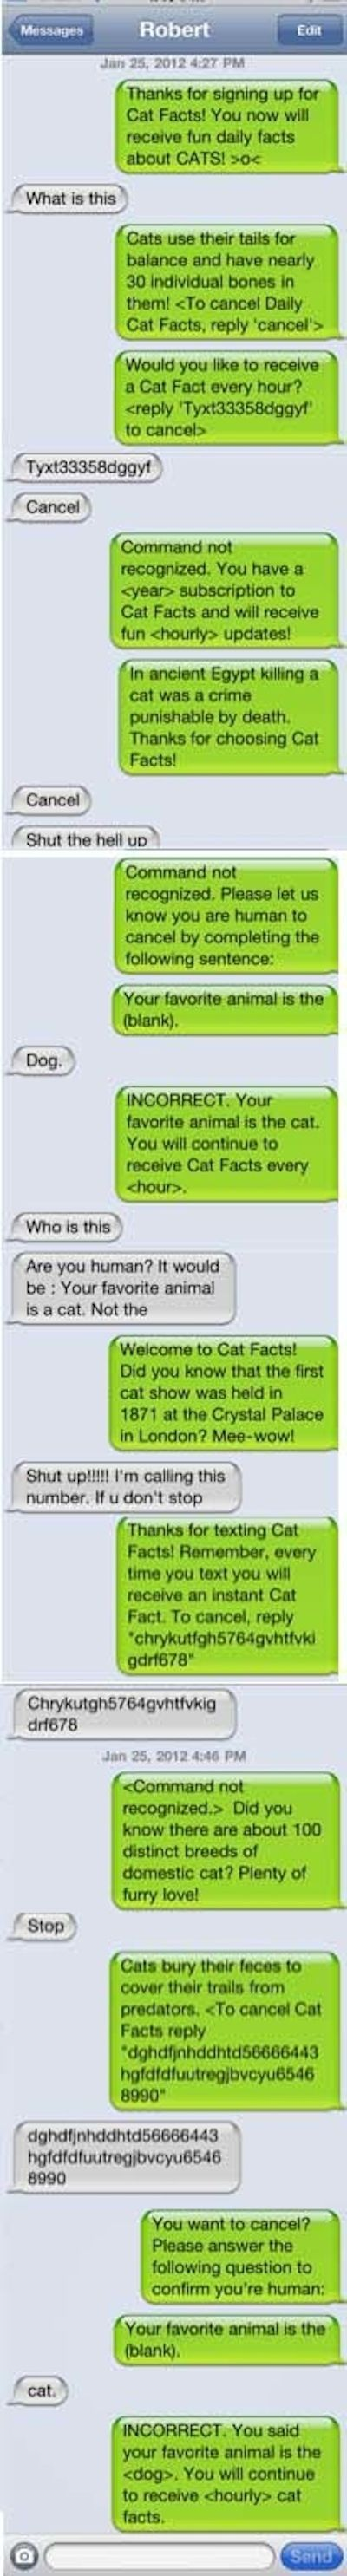 How to Respond to a Wrong Number Text (25 pics)